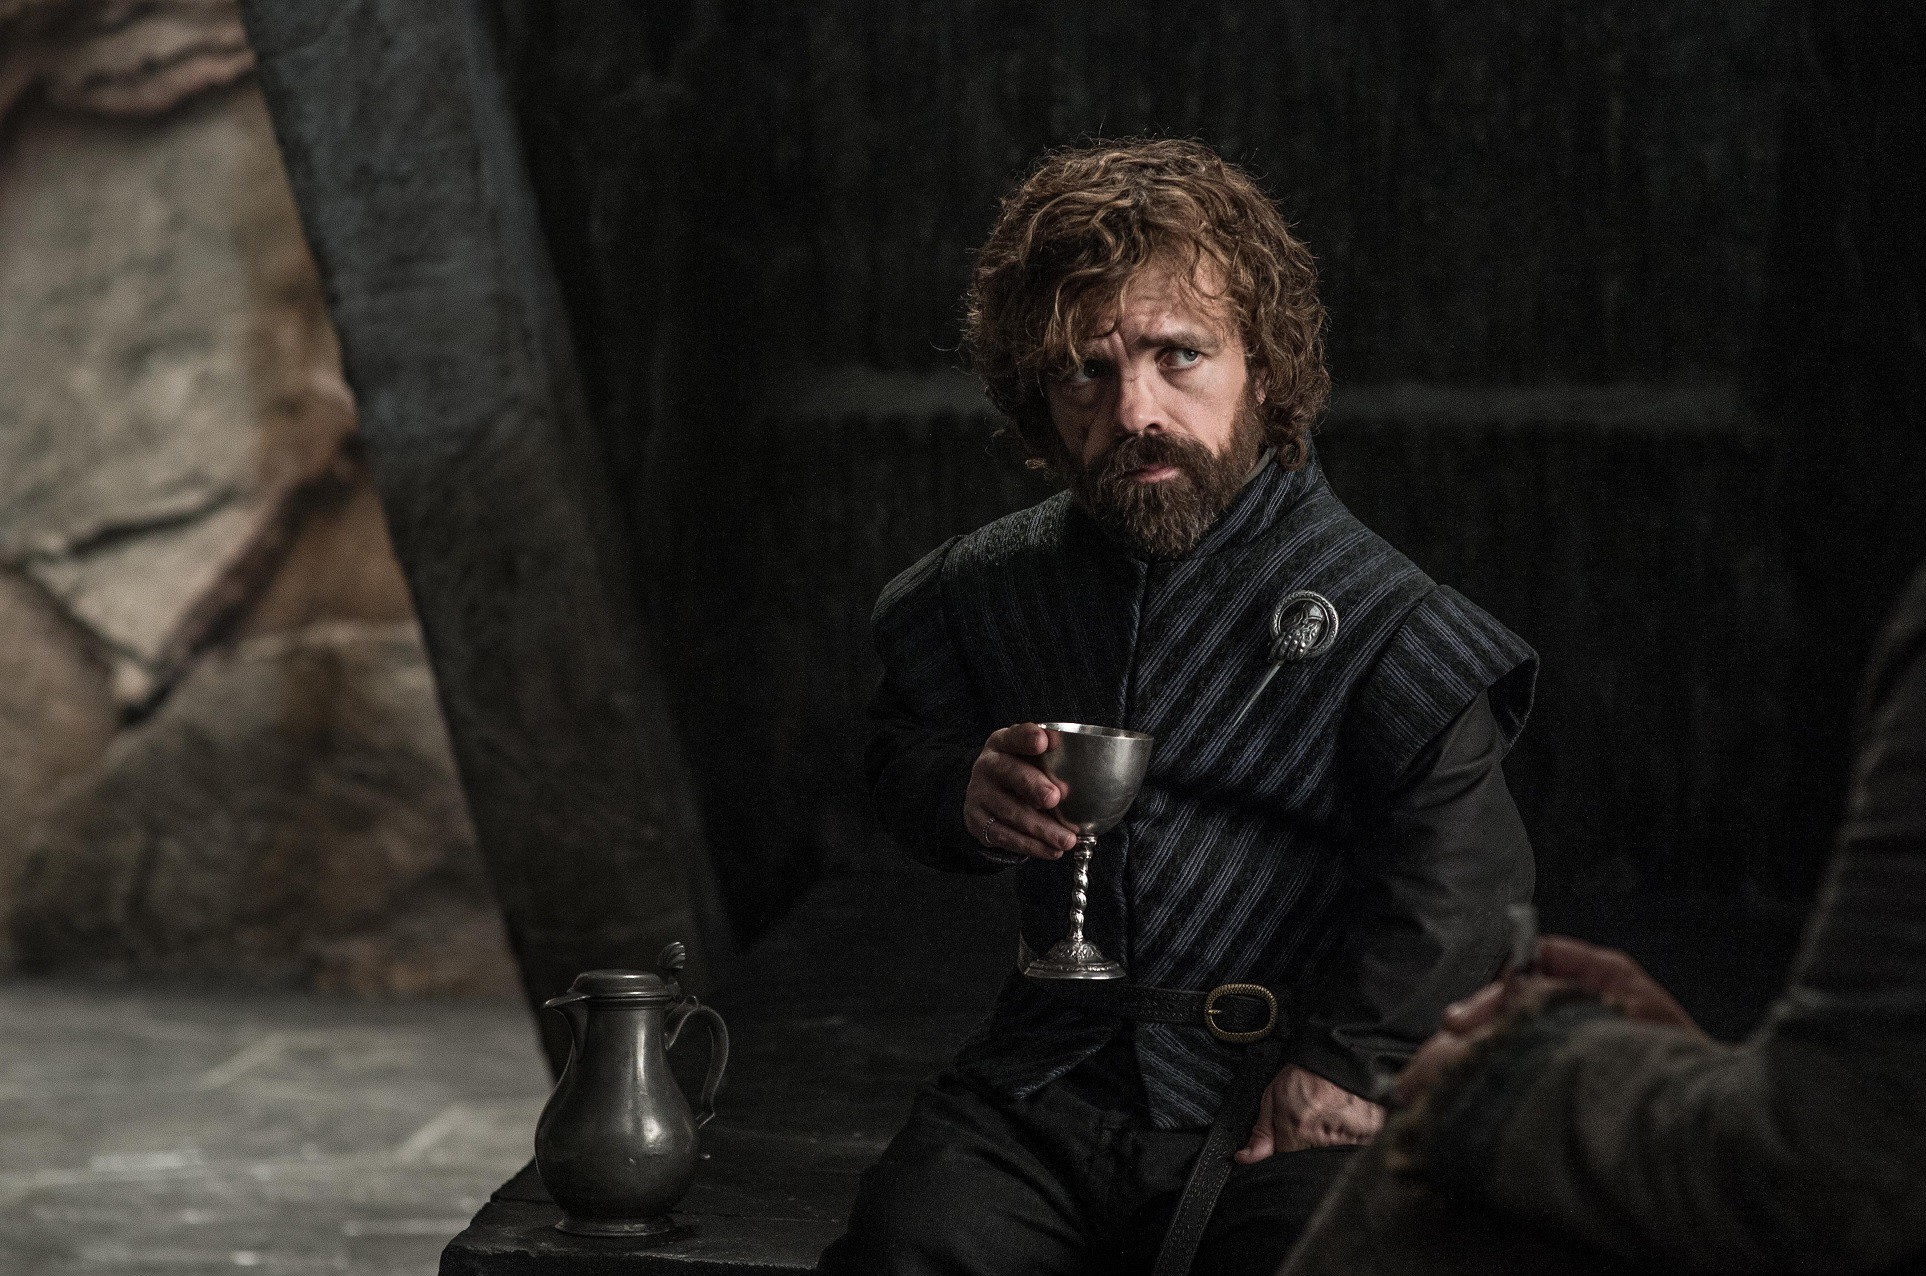 tyrion-lannister-eastwatch-15581178442791690978044.jpg